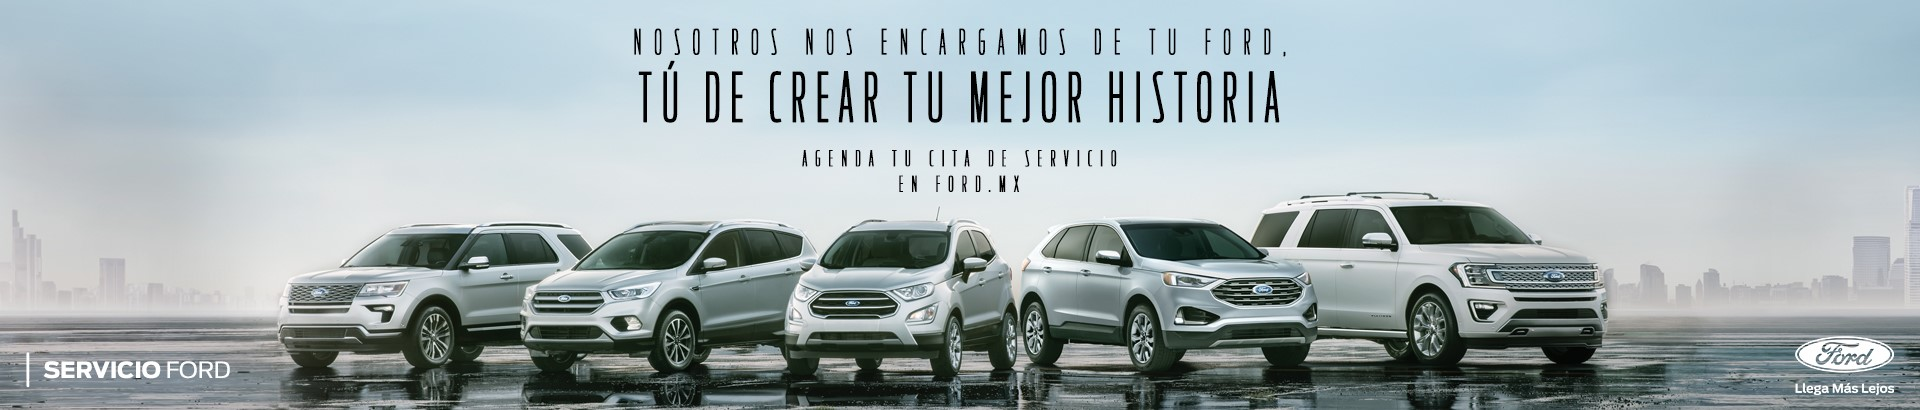 Ford Country Aguascalientes